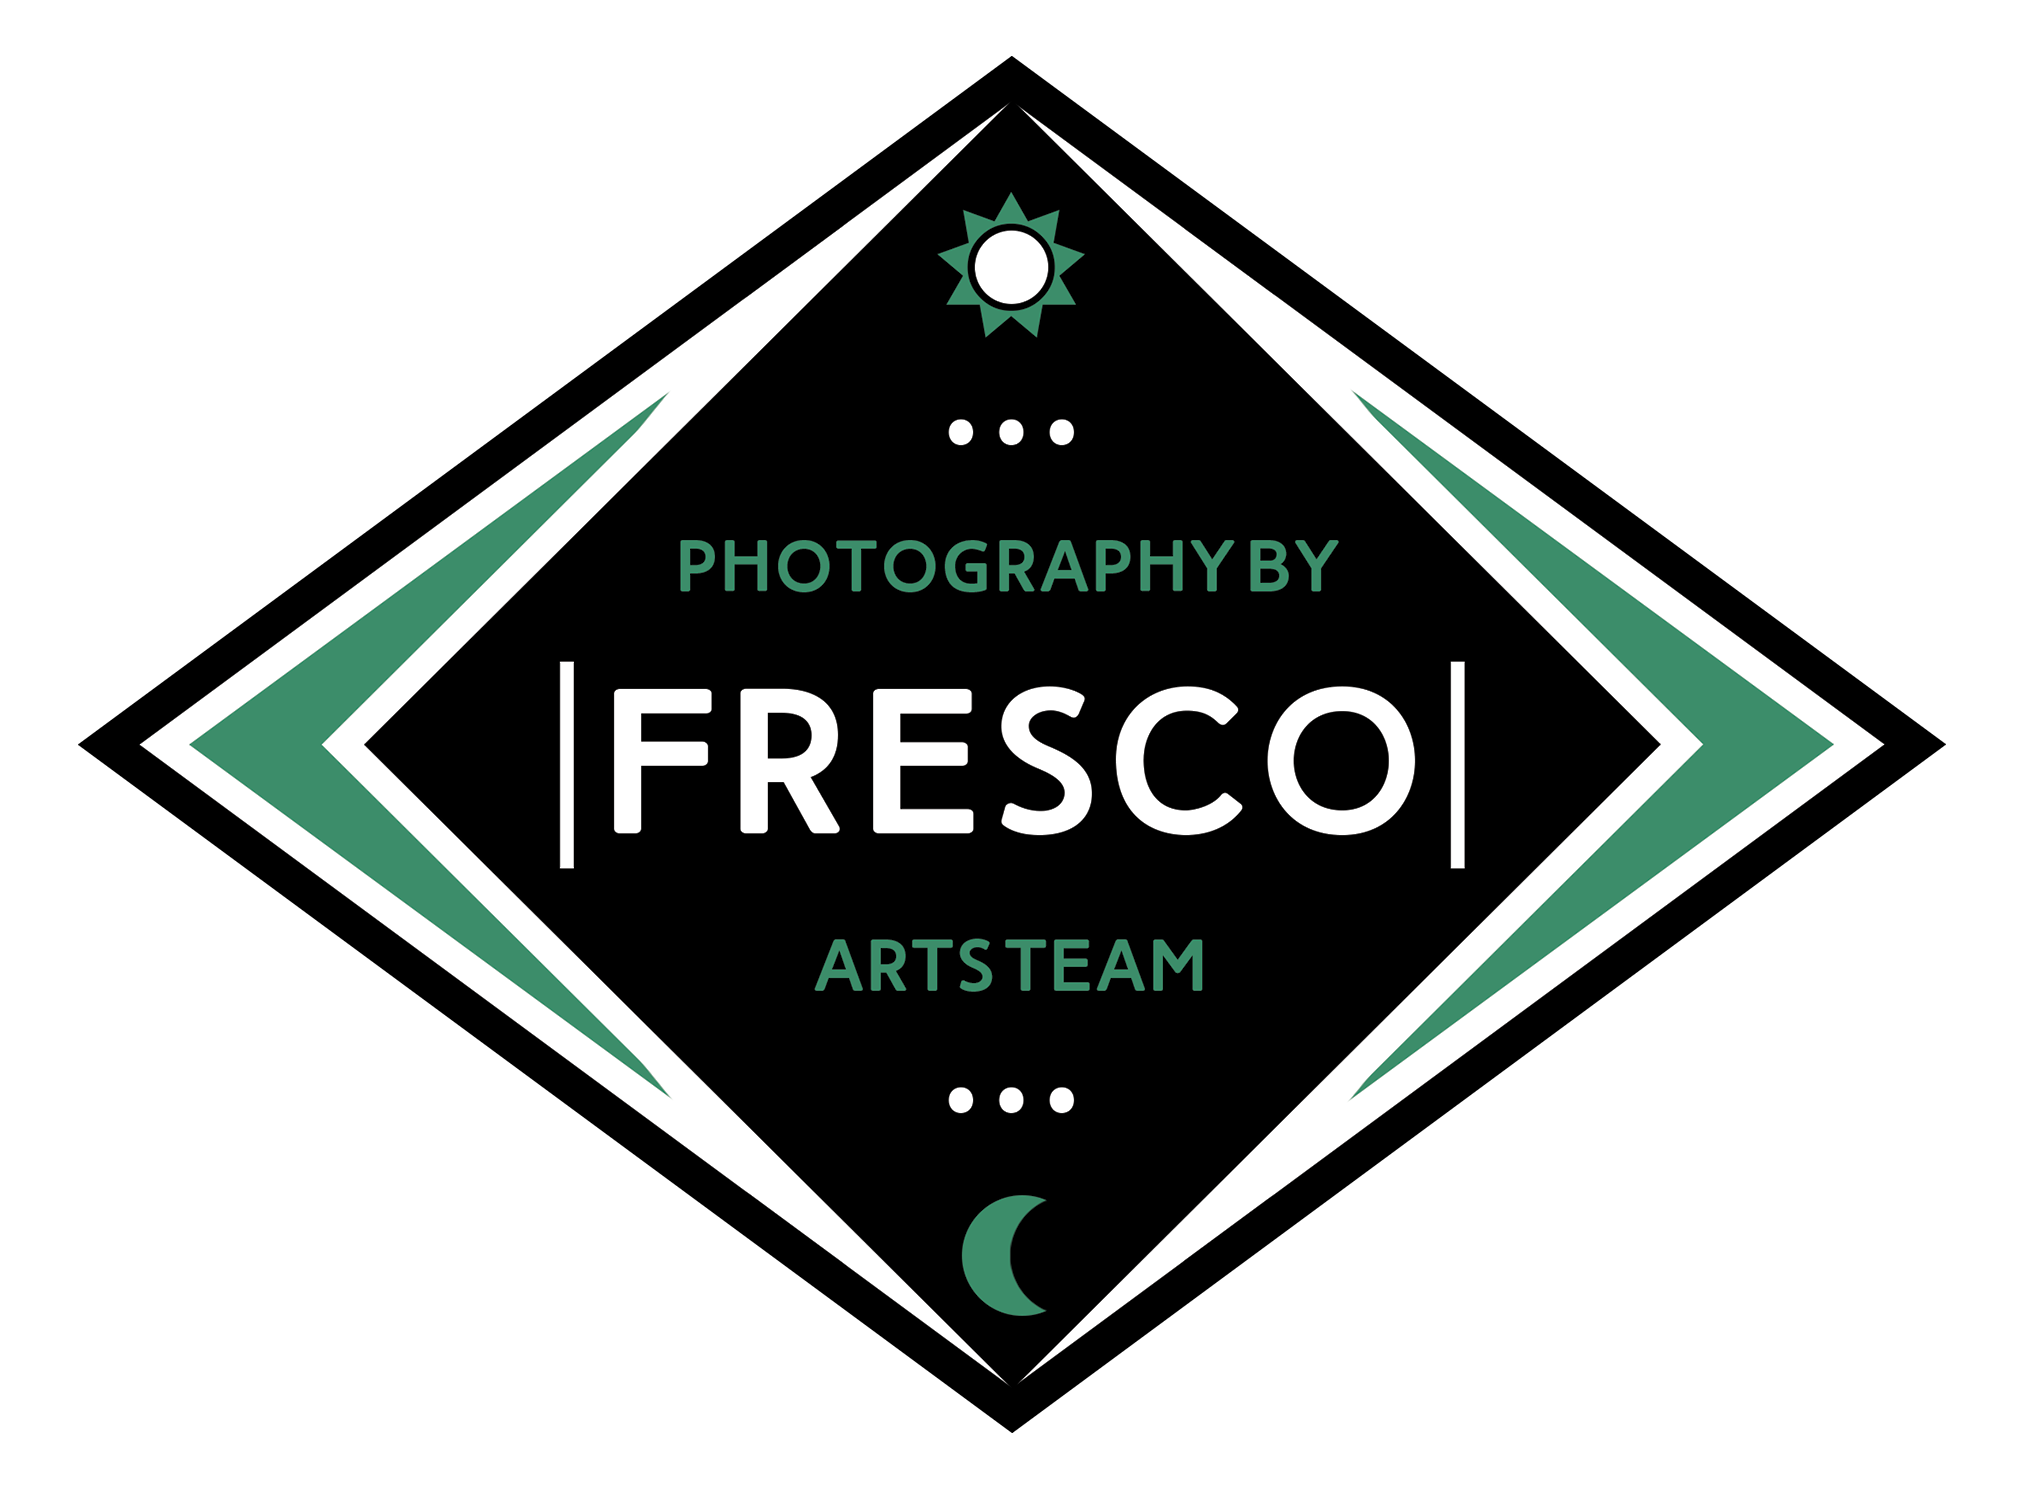 Fresco Arts Team